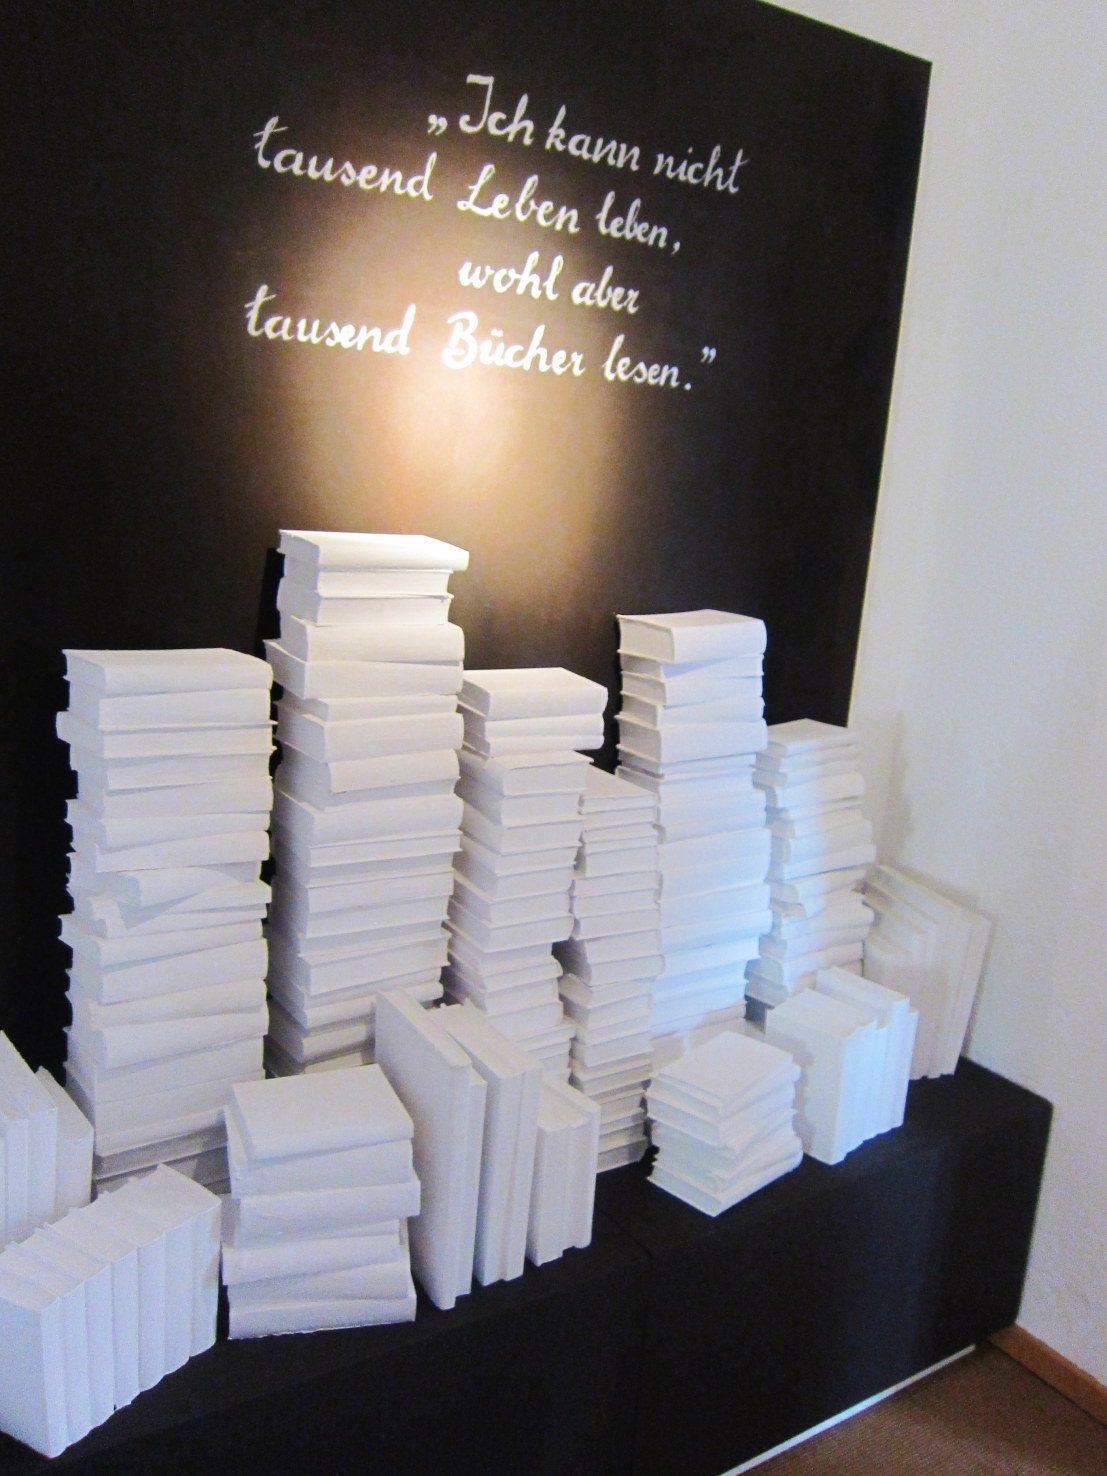 Installation in the museum quoting Bowien in homage to Bowien's collection of thousands of books